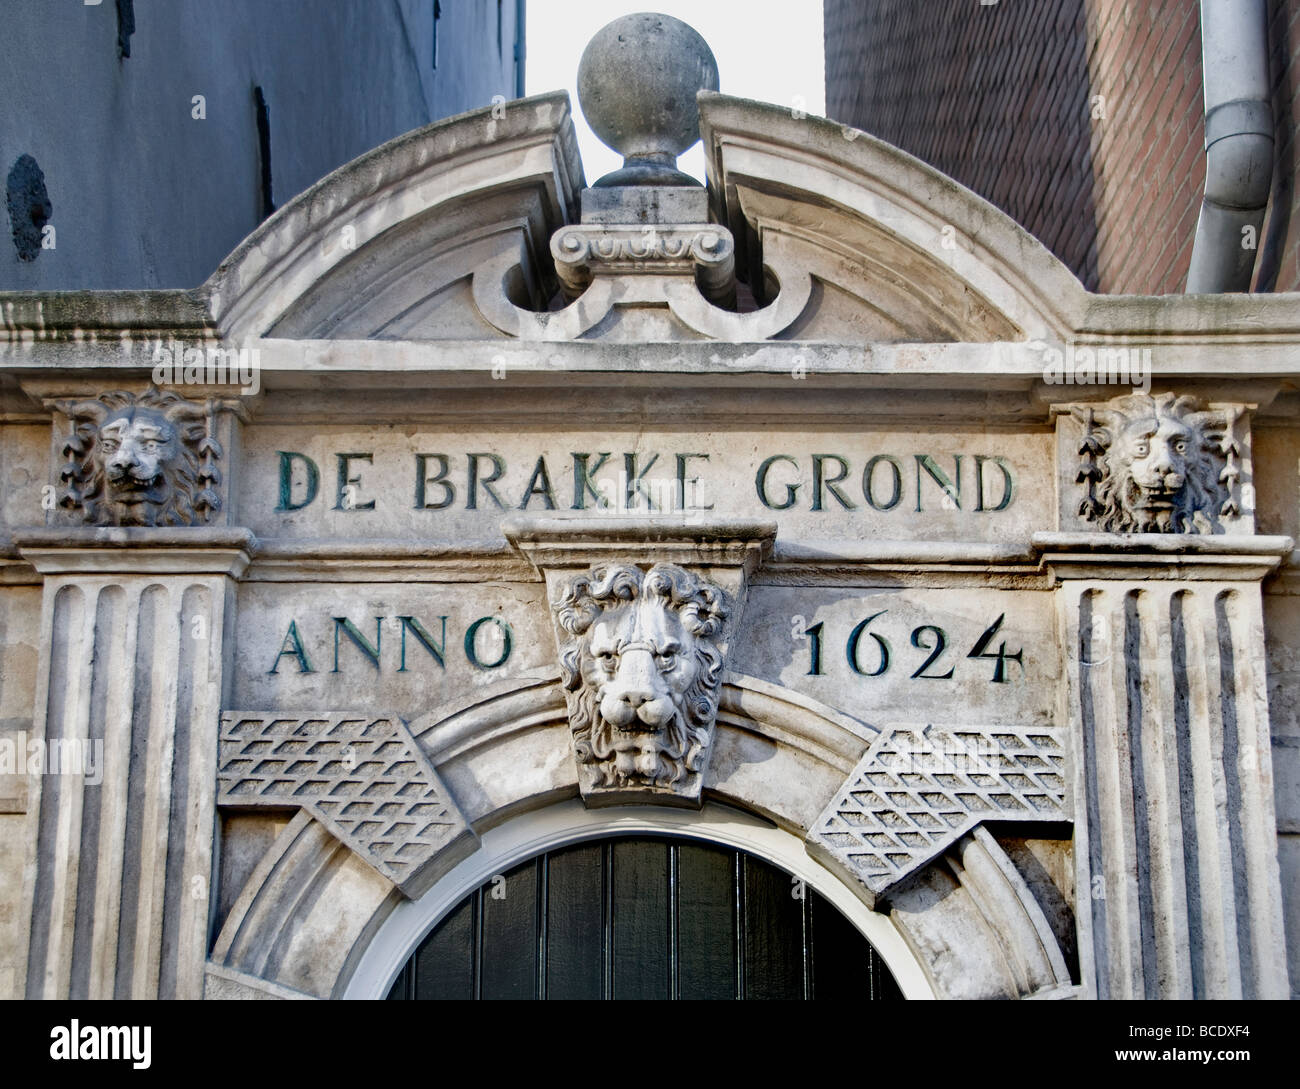 De Brakke grond Amsterdam act acting drama comedy - Stock Image